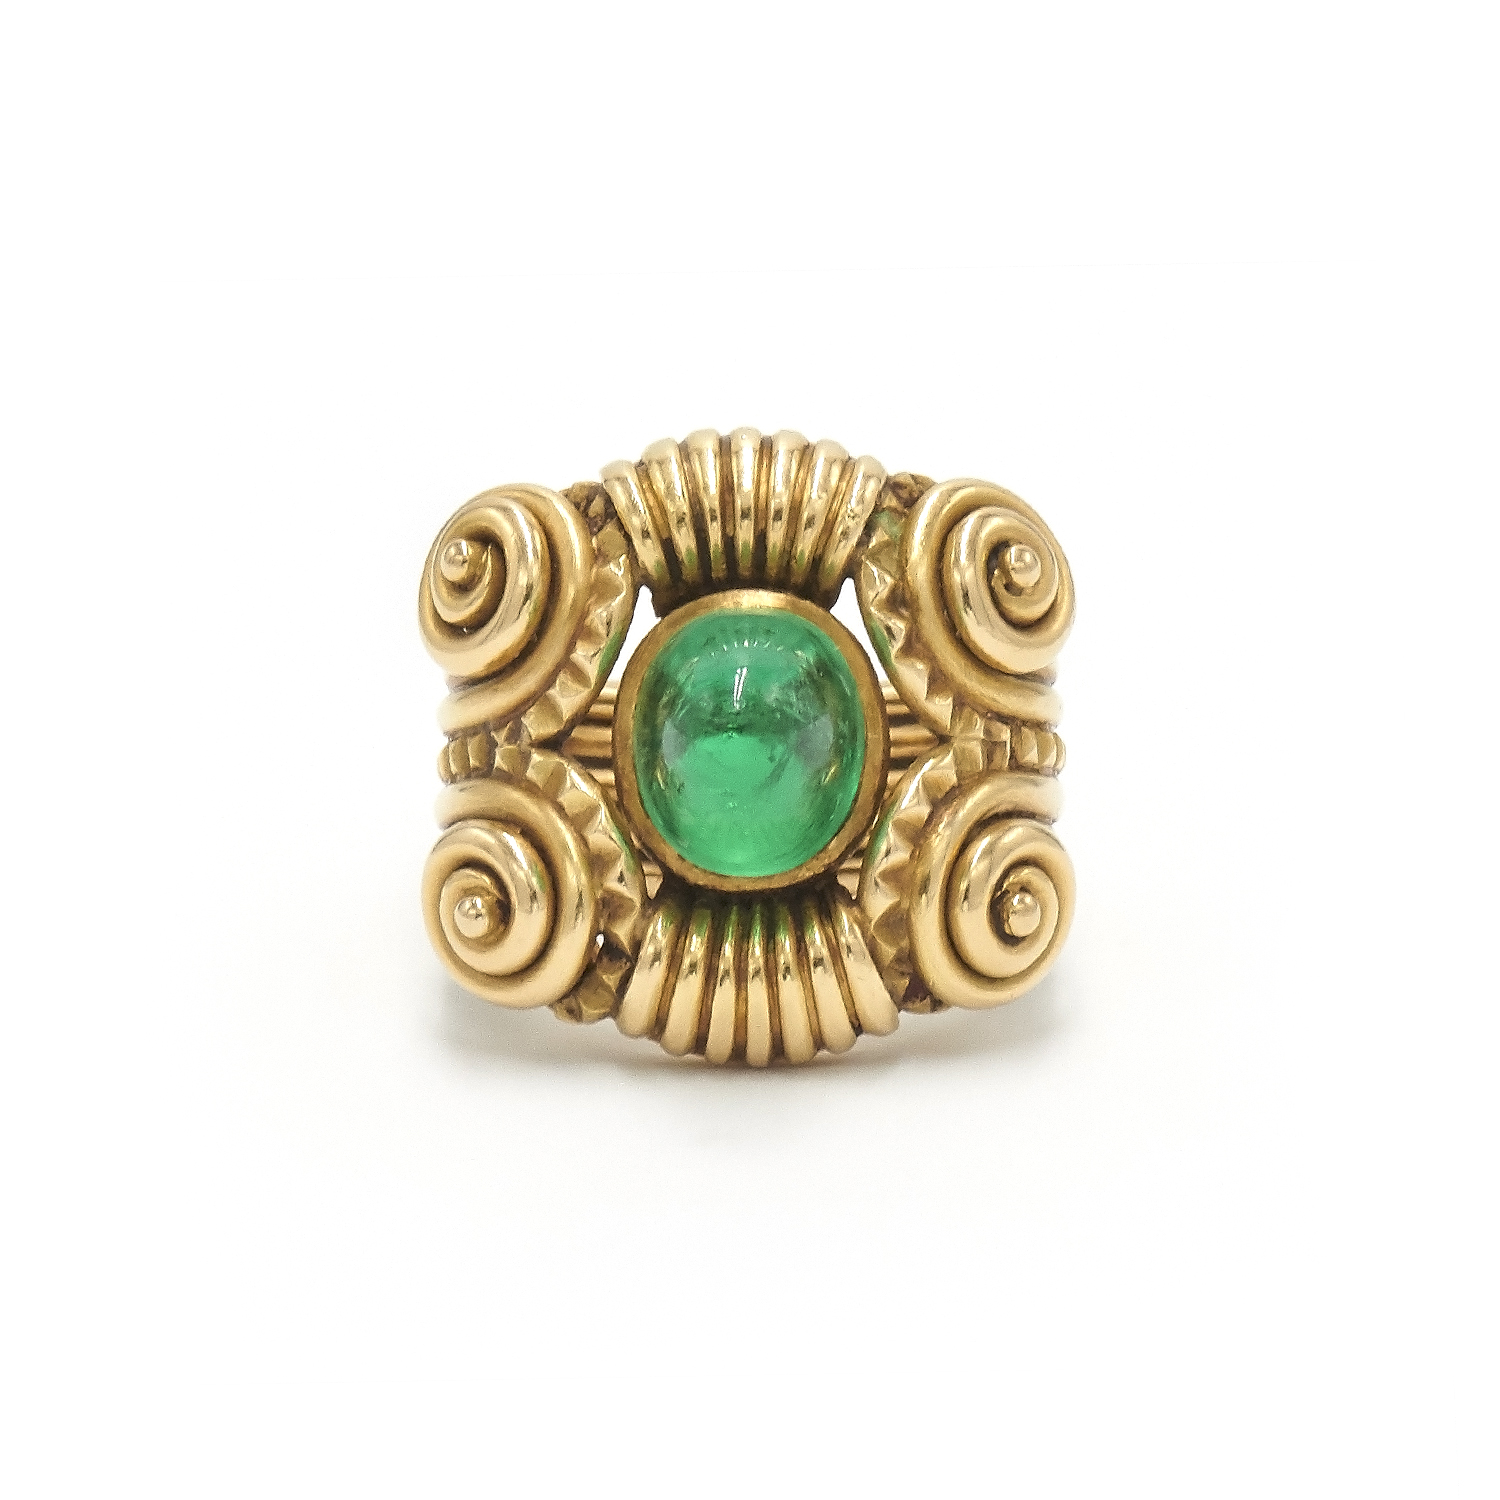 18K Yellow Gold Cabochon Emerald Ring by Rene Boivin Style R-40940-FL-0-0